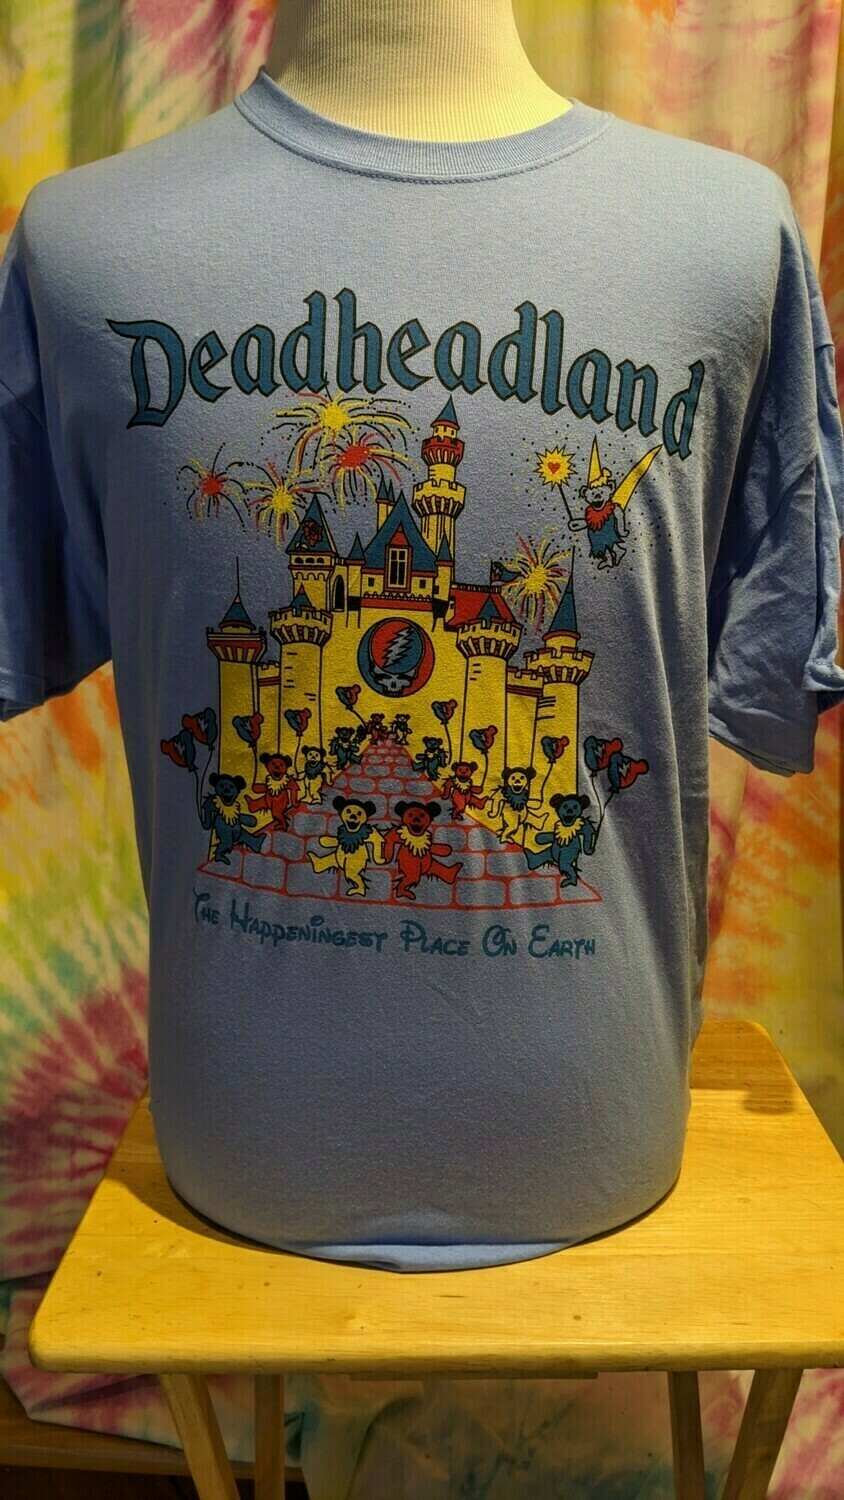 Deadheadland Classic T-shirt Carolina Blue Adult Medium